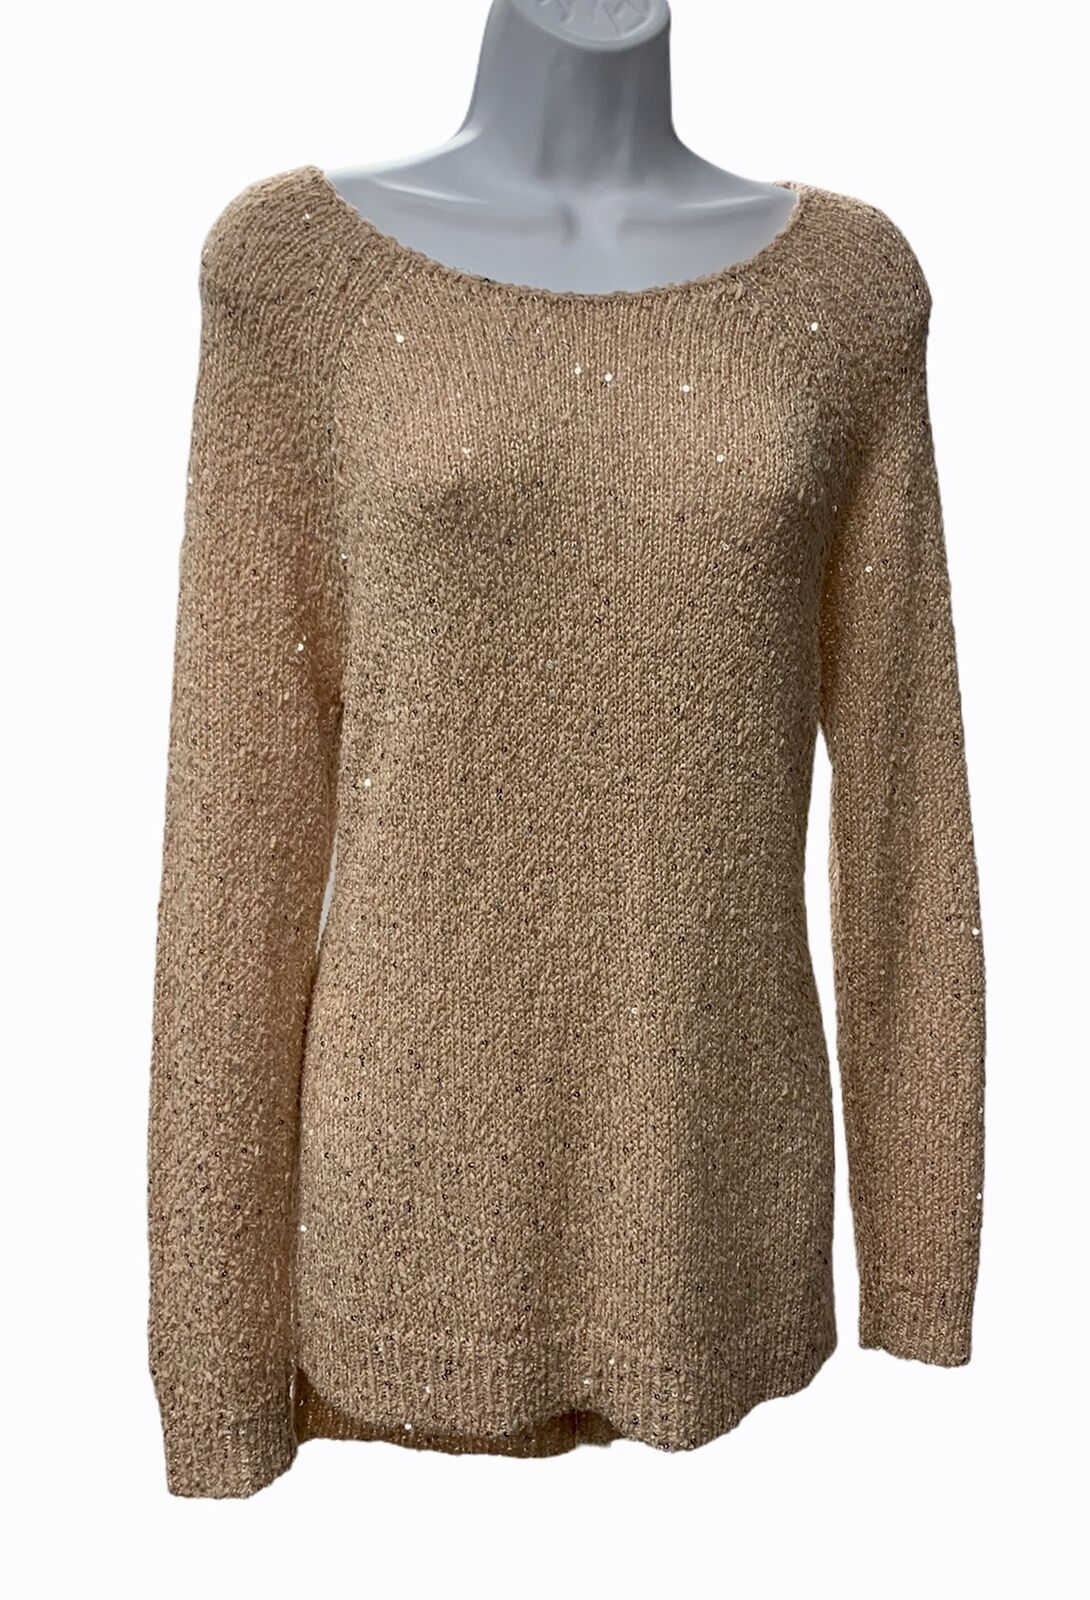 Chico's Sequin Claire Knit Sweater Womens Light P… - image 4